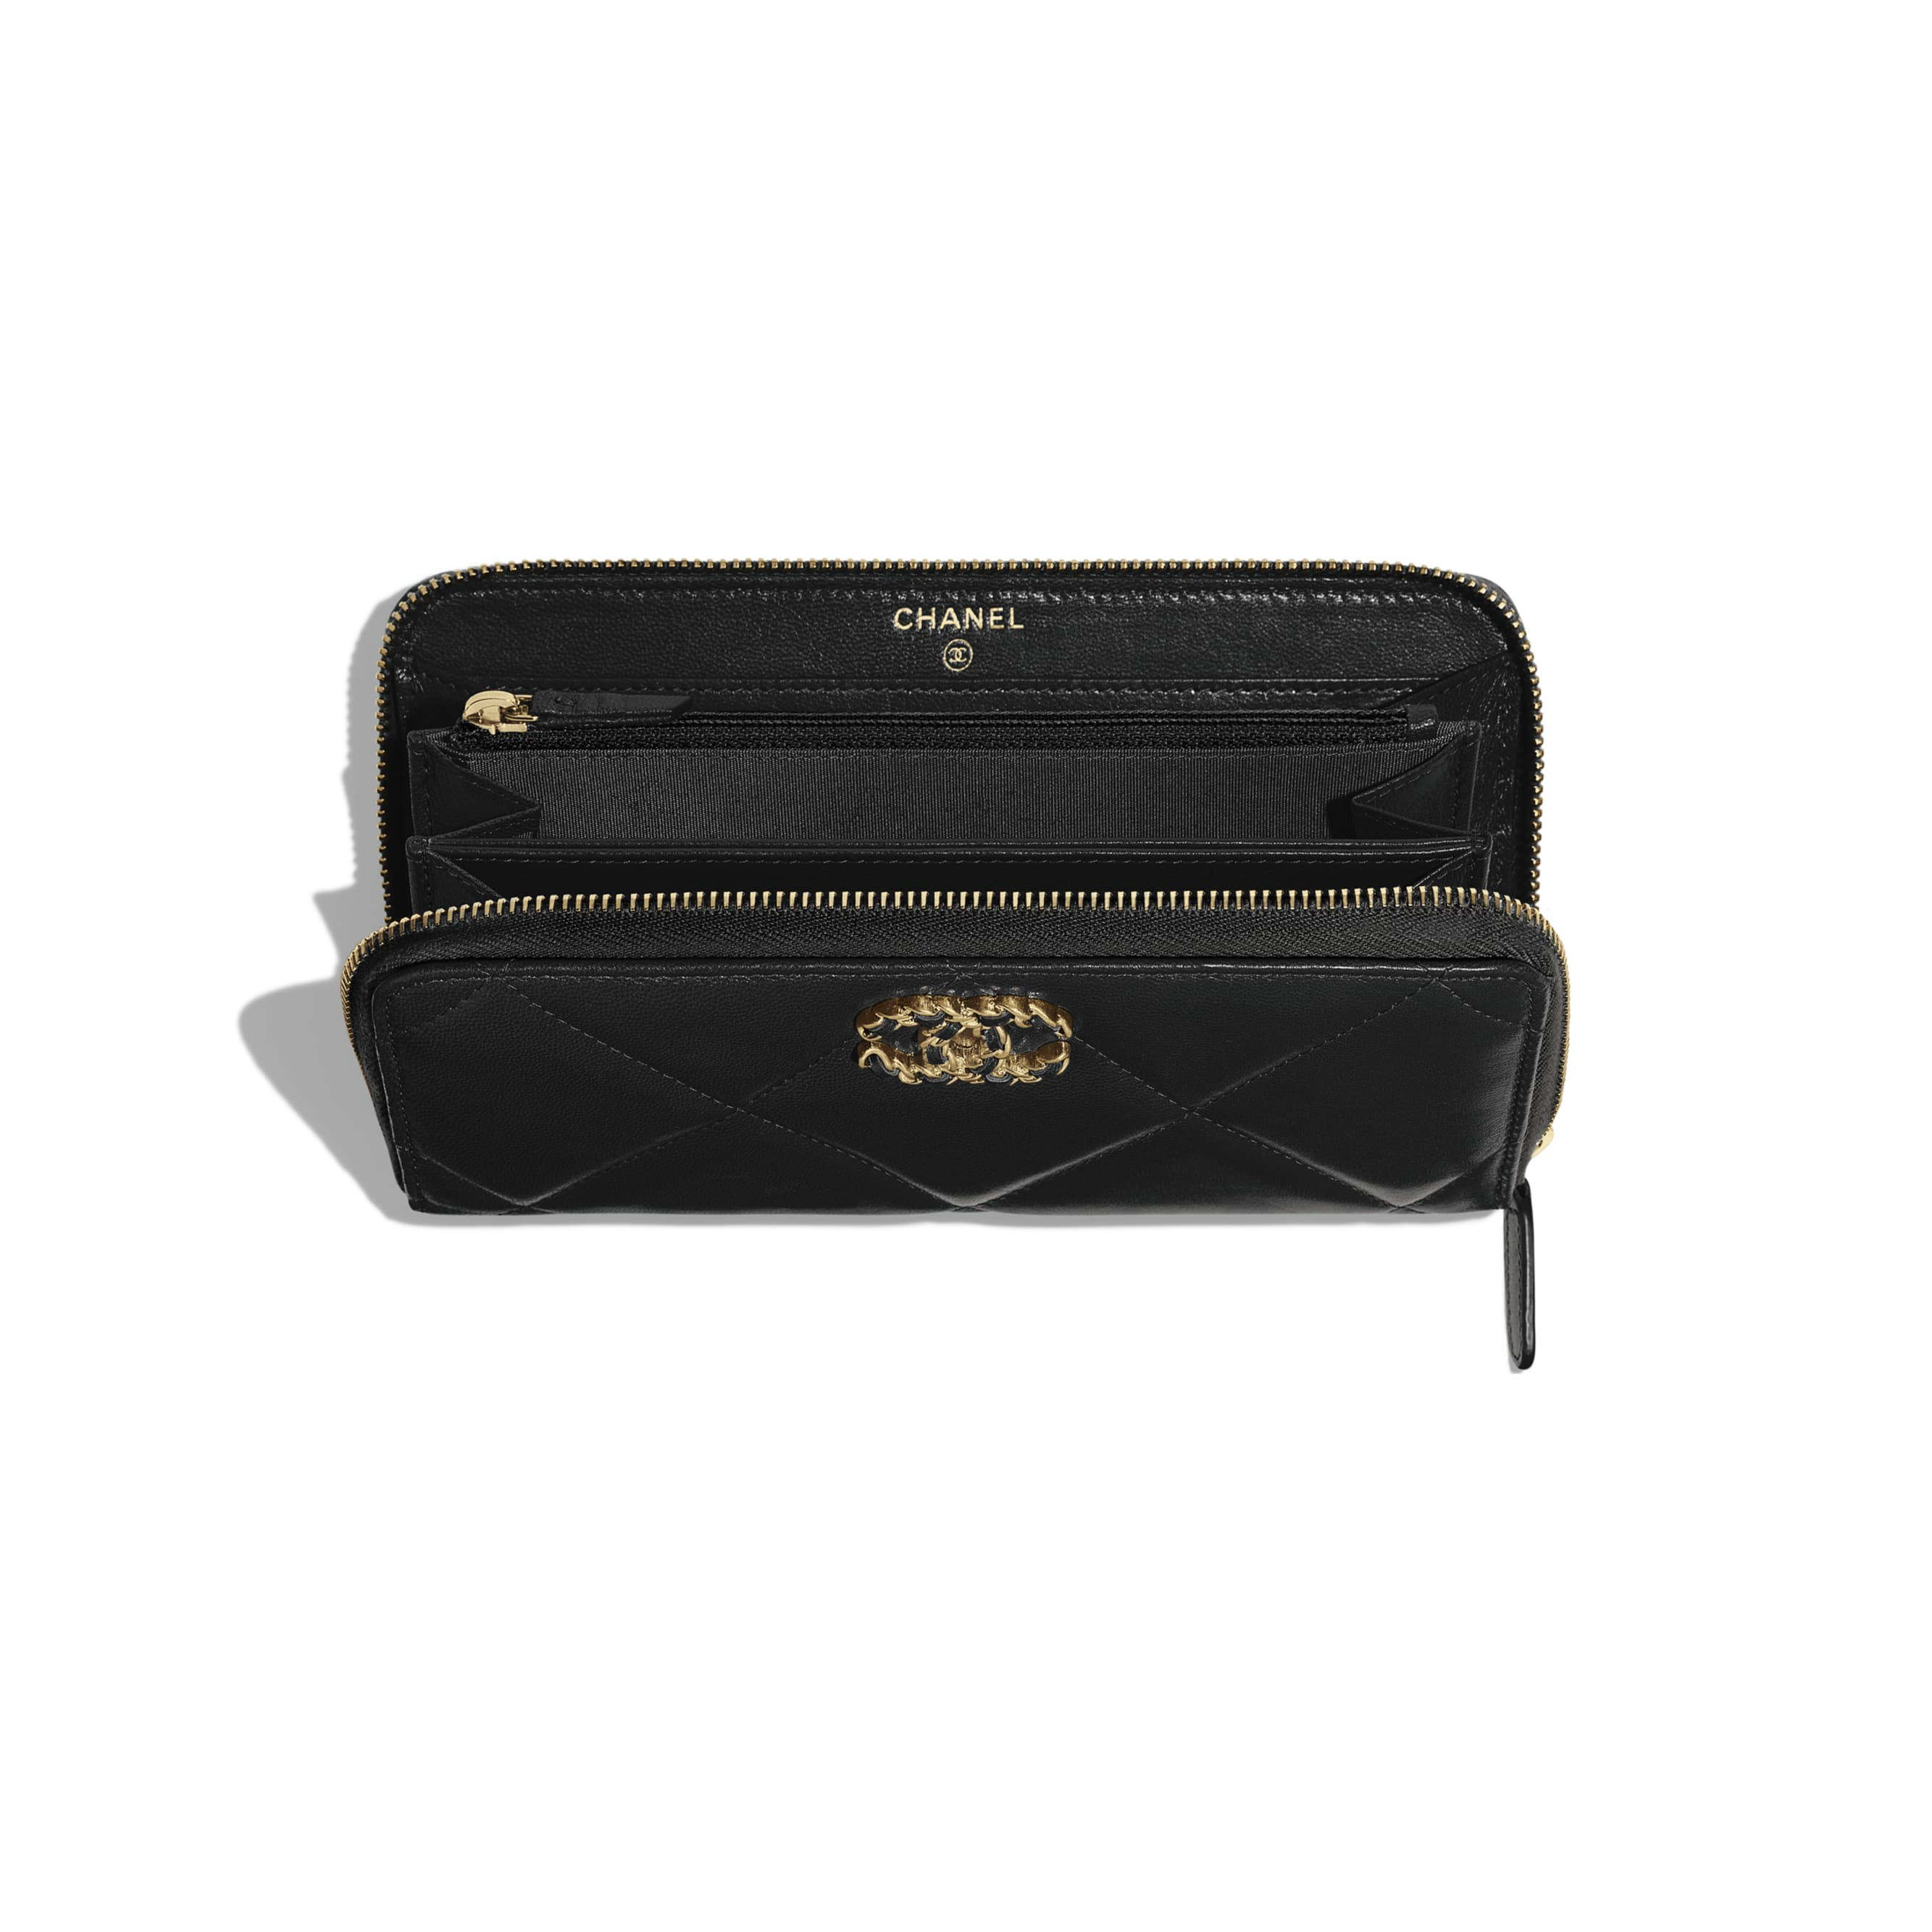 CHANEL 19 Long Zipped Wallet - Black - Goatskin, Gold-Tone, Silver-Tone & Ruthenium-Finish Metal - Other view - see standard sized version